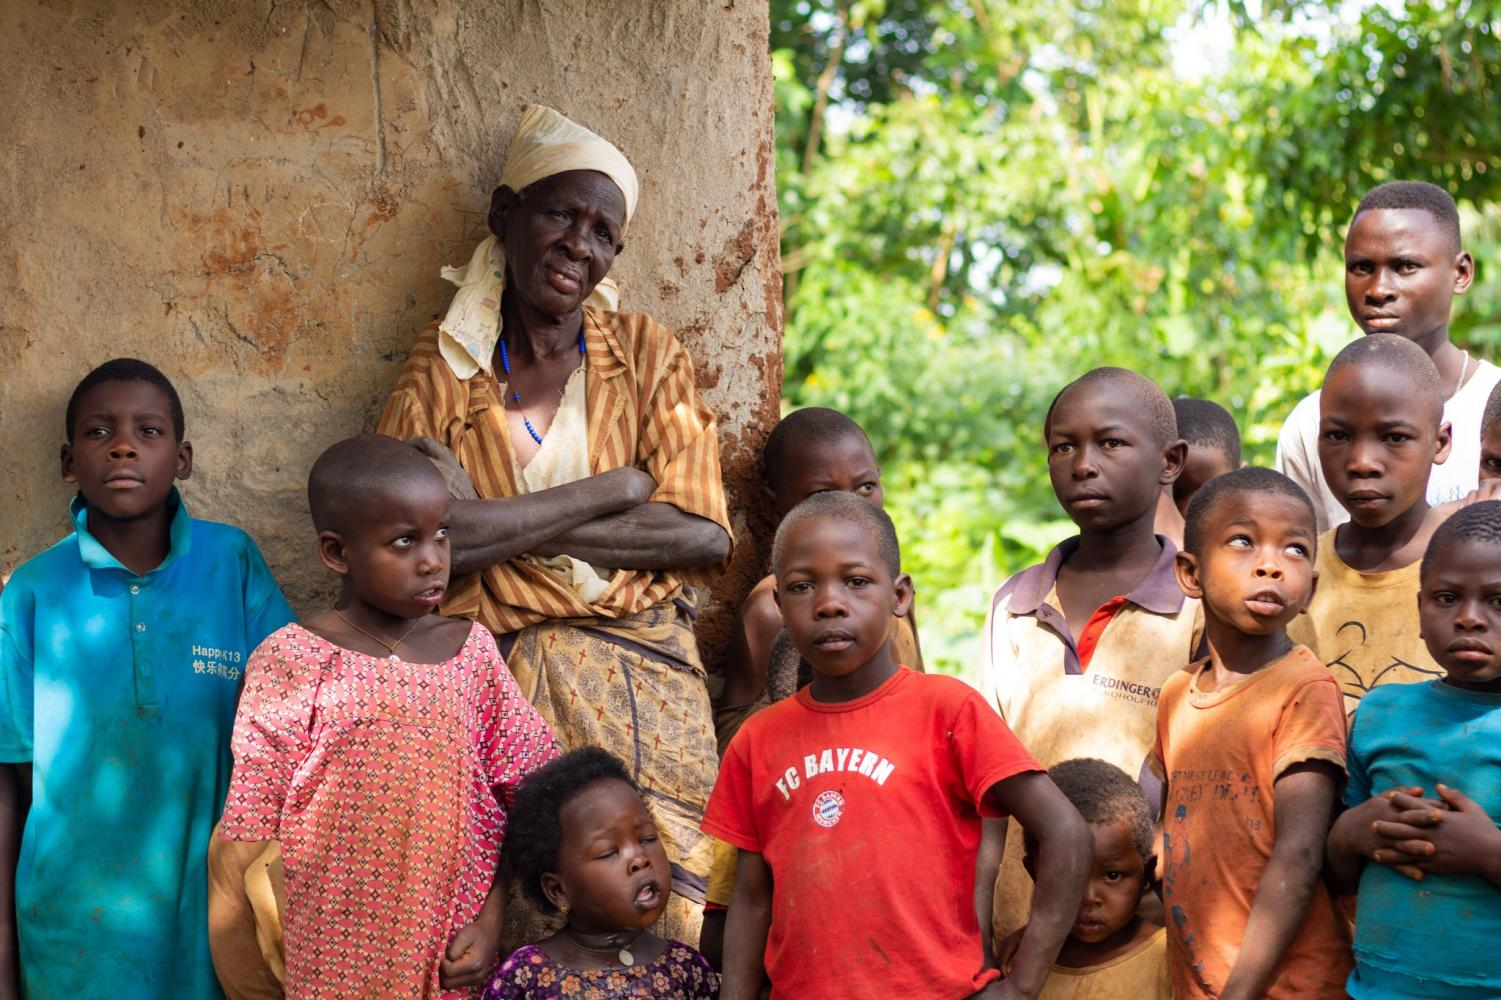 Sembo%E2%80%99s+stands+with+her+grandchildren.+10+of+her+13+children+died+of+AIDS%2C+leaving+her+to+take+care+of+the+grandchildren+